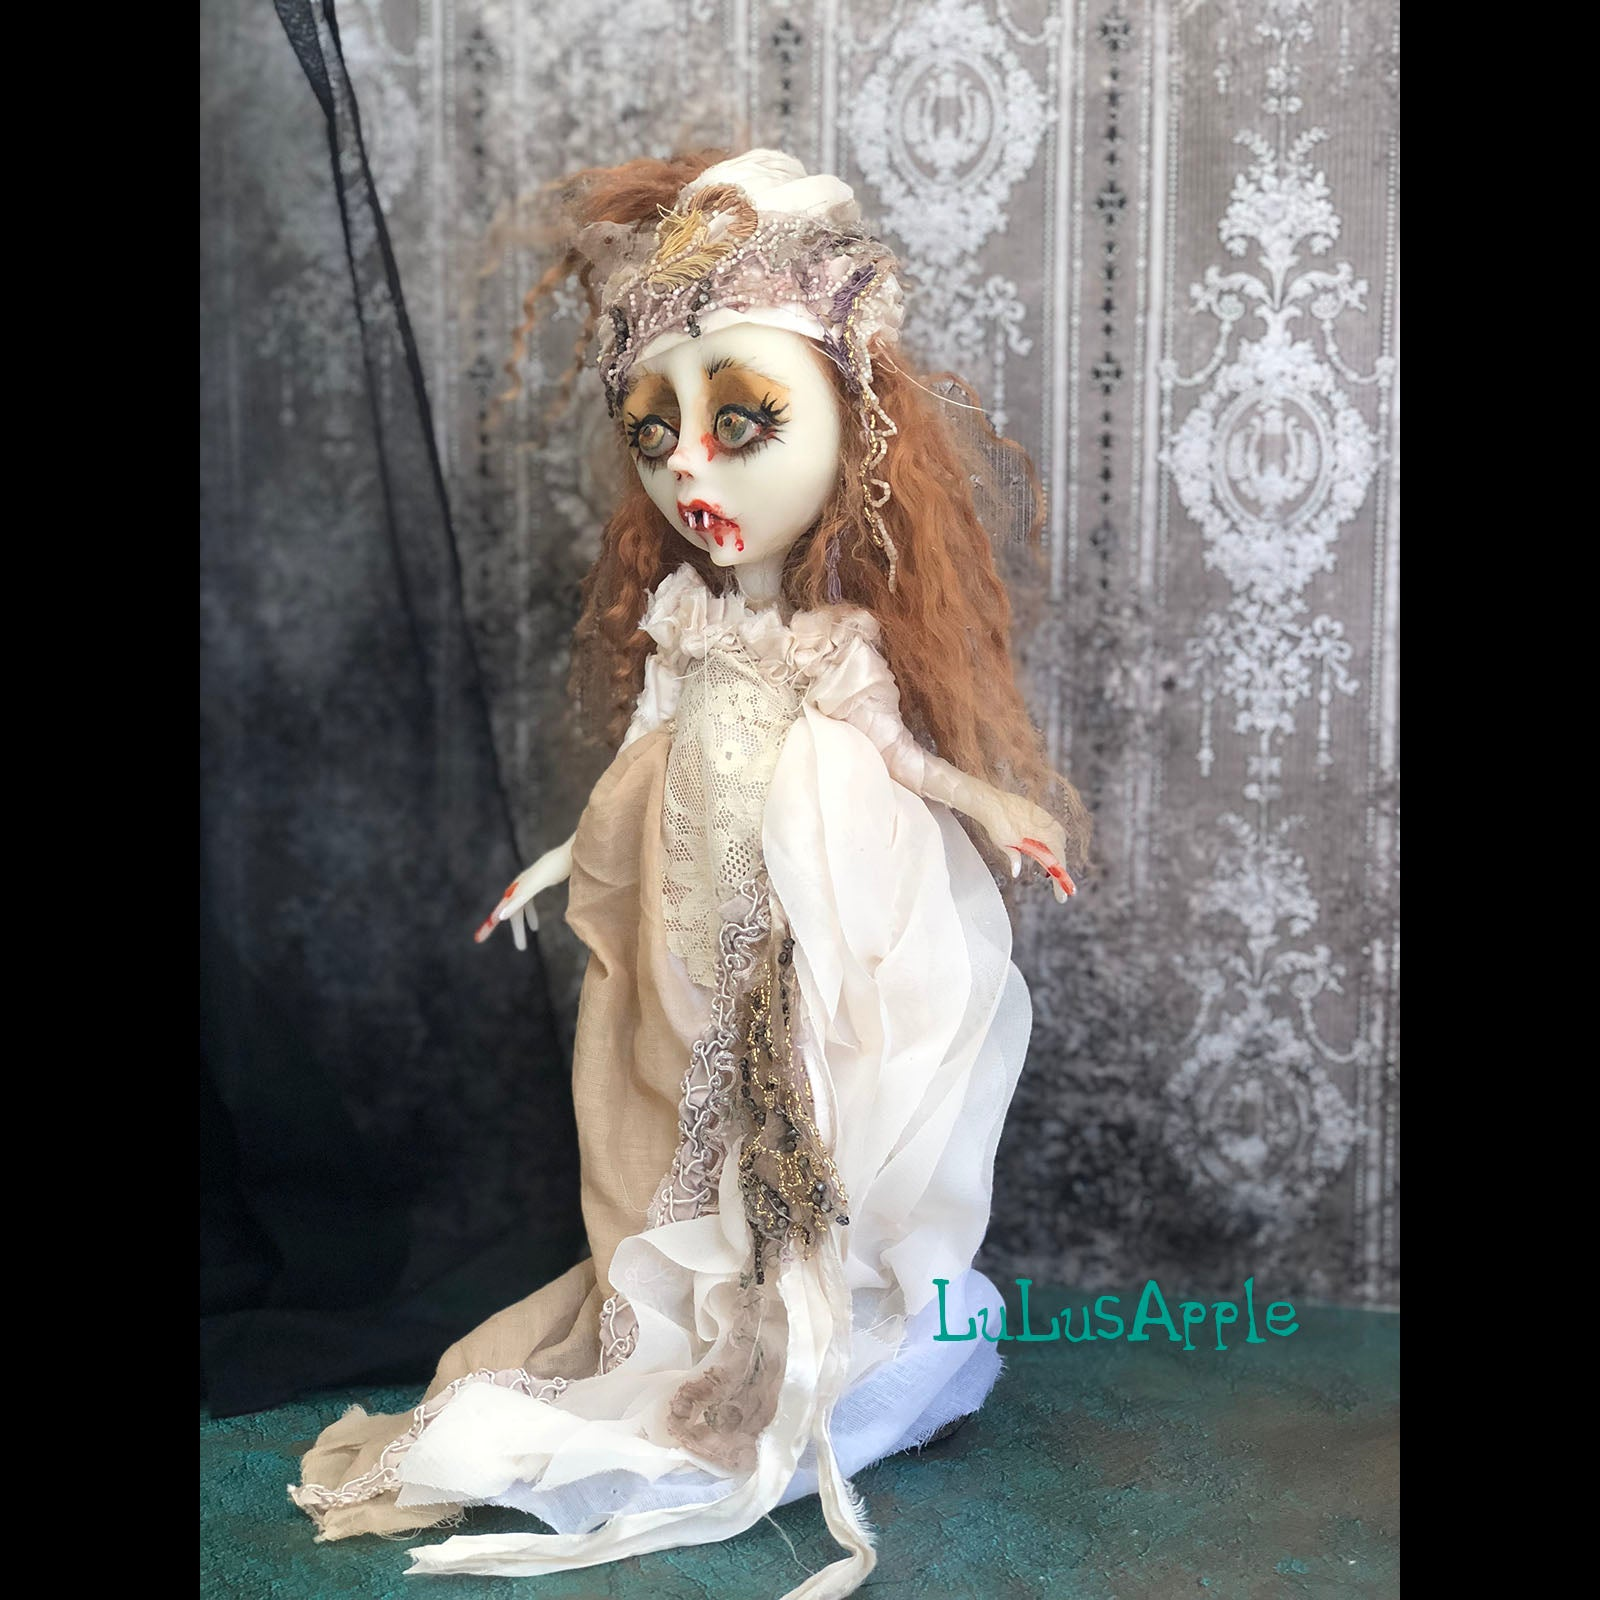 Galianna Vampire Bride Halloween Art Doll OOAK LuLusApple